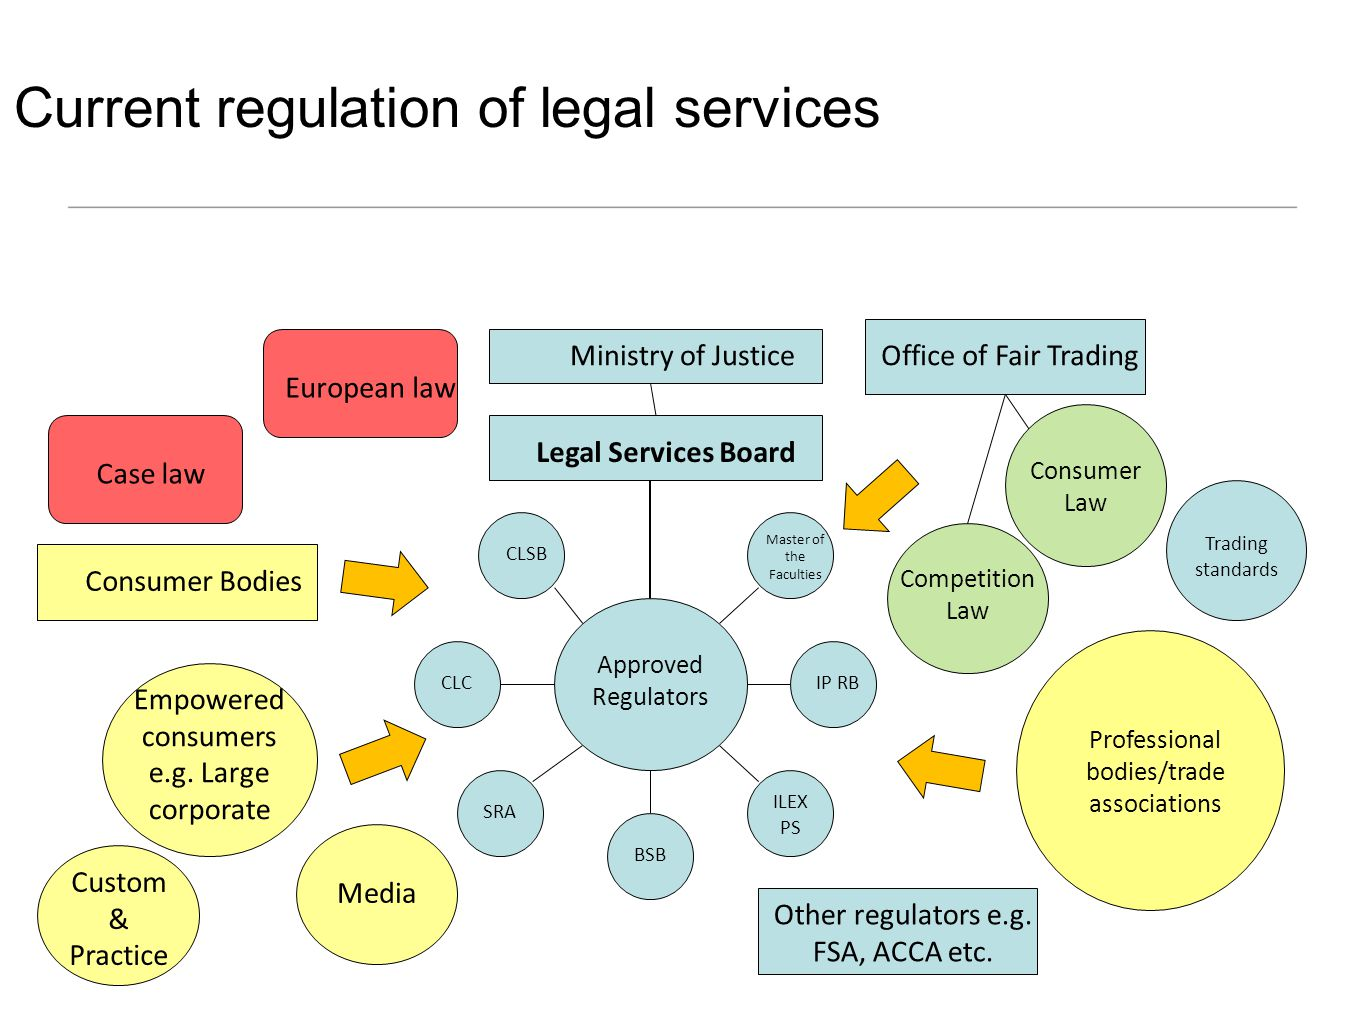 Current regulation of legal services Approved Regulators SRA BSB ILEX PS CLCIP RB Master of the Faculties CLSB Legal Services Board Ministry of Justice Professional bodies/trade associations Consumer Law Competition Law Trading standards Office of Fair Trading European law Consumer Bodies Empowered consumers e.g.